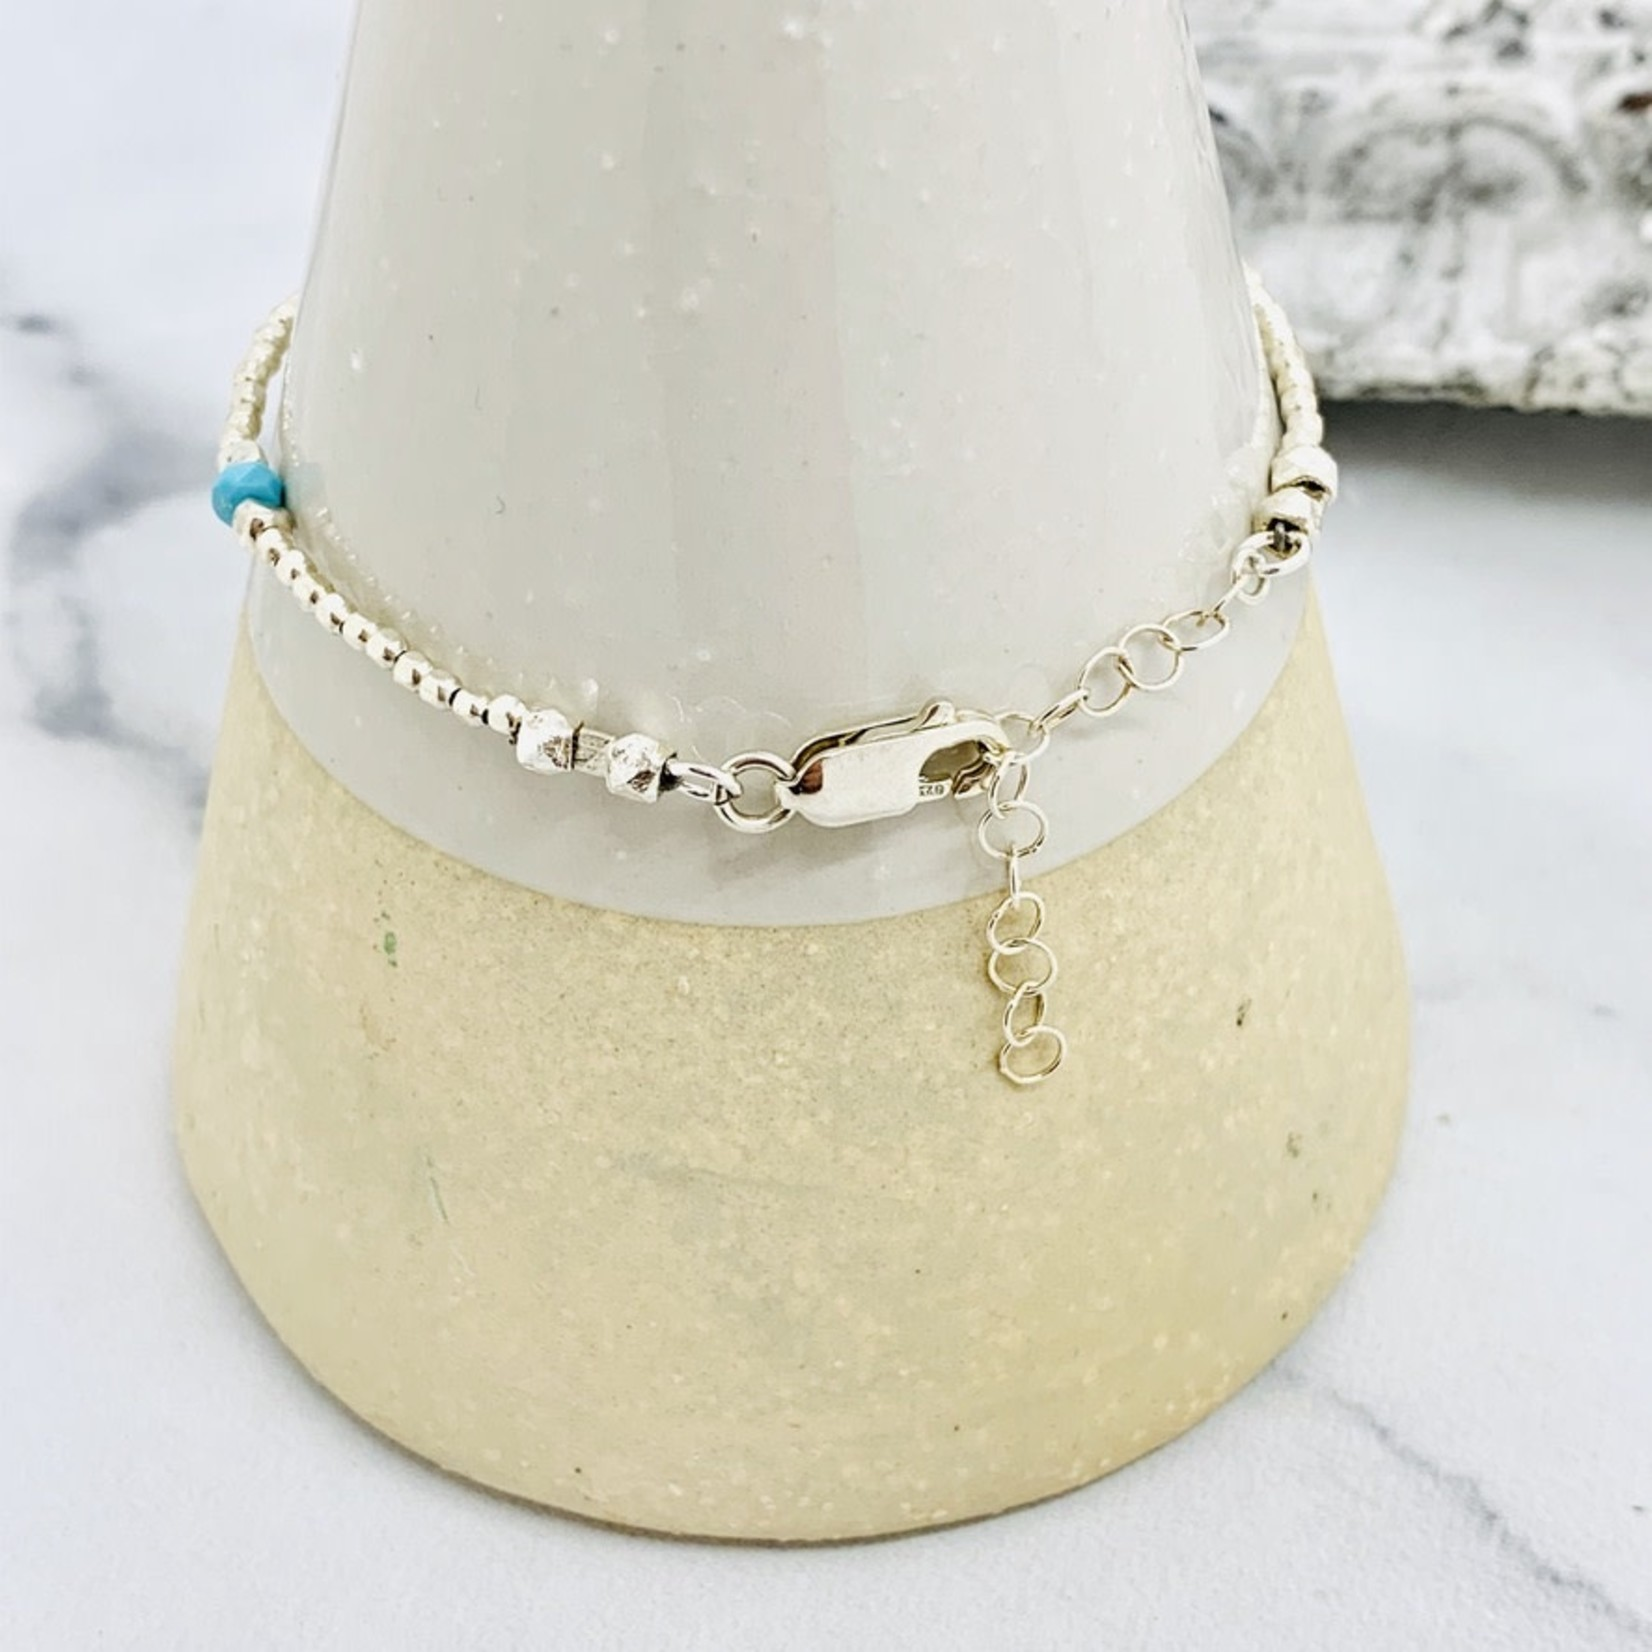 Handmade Sterling Silver and Sleeping Beauty Turquoise Bracelet